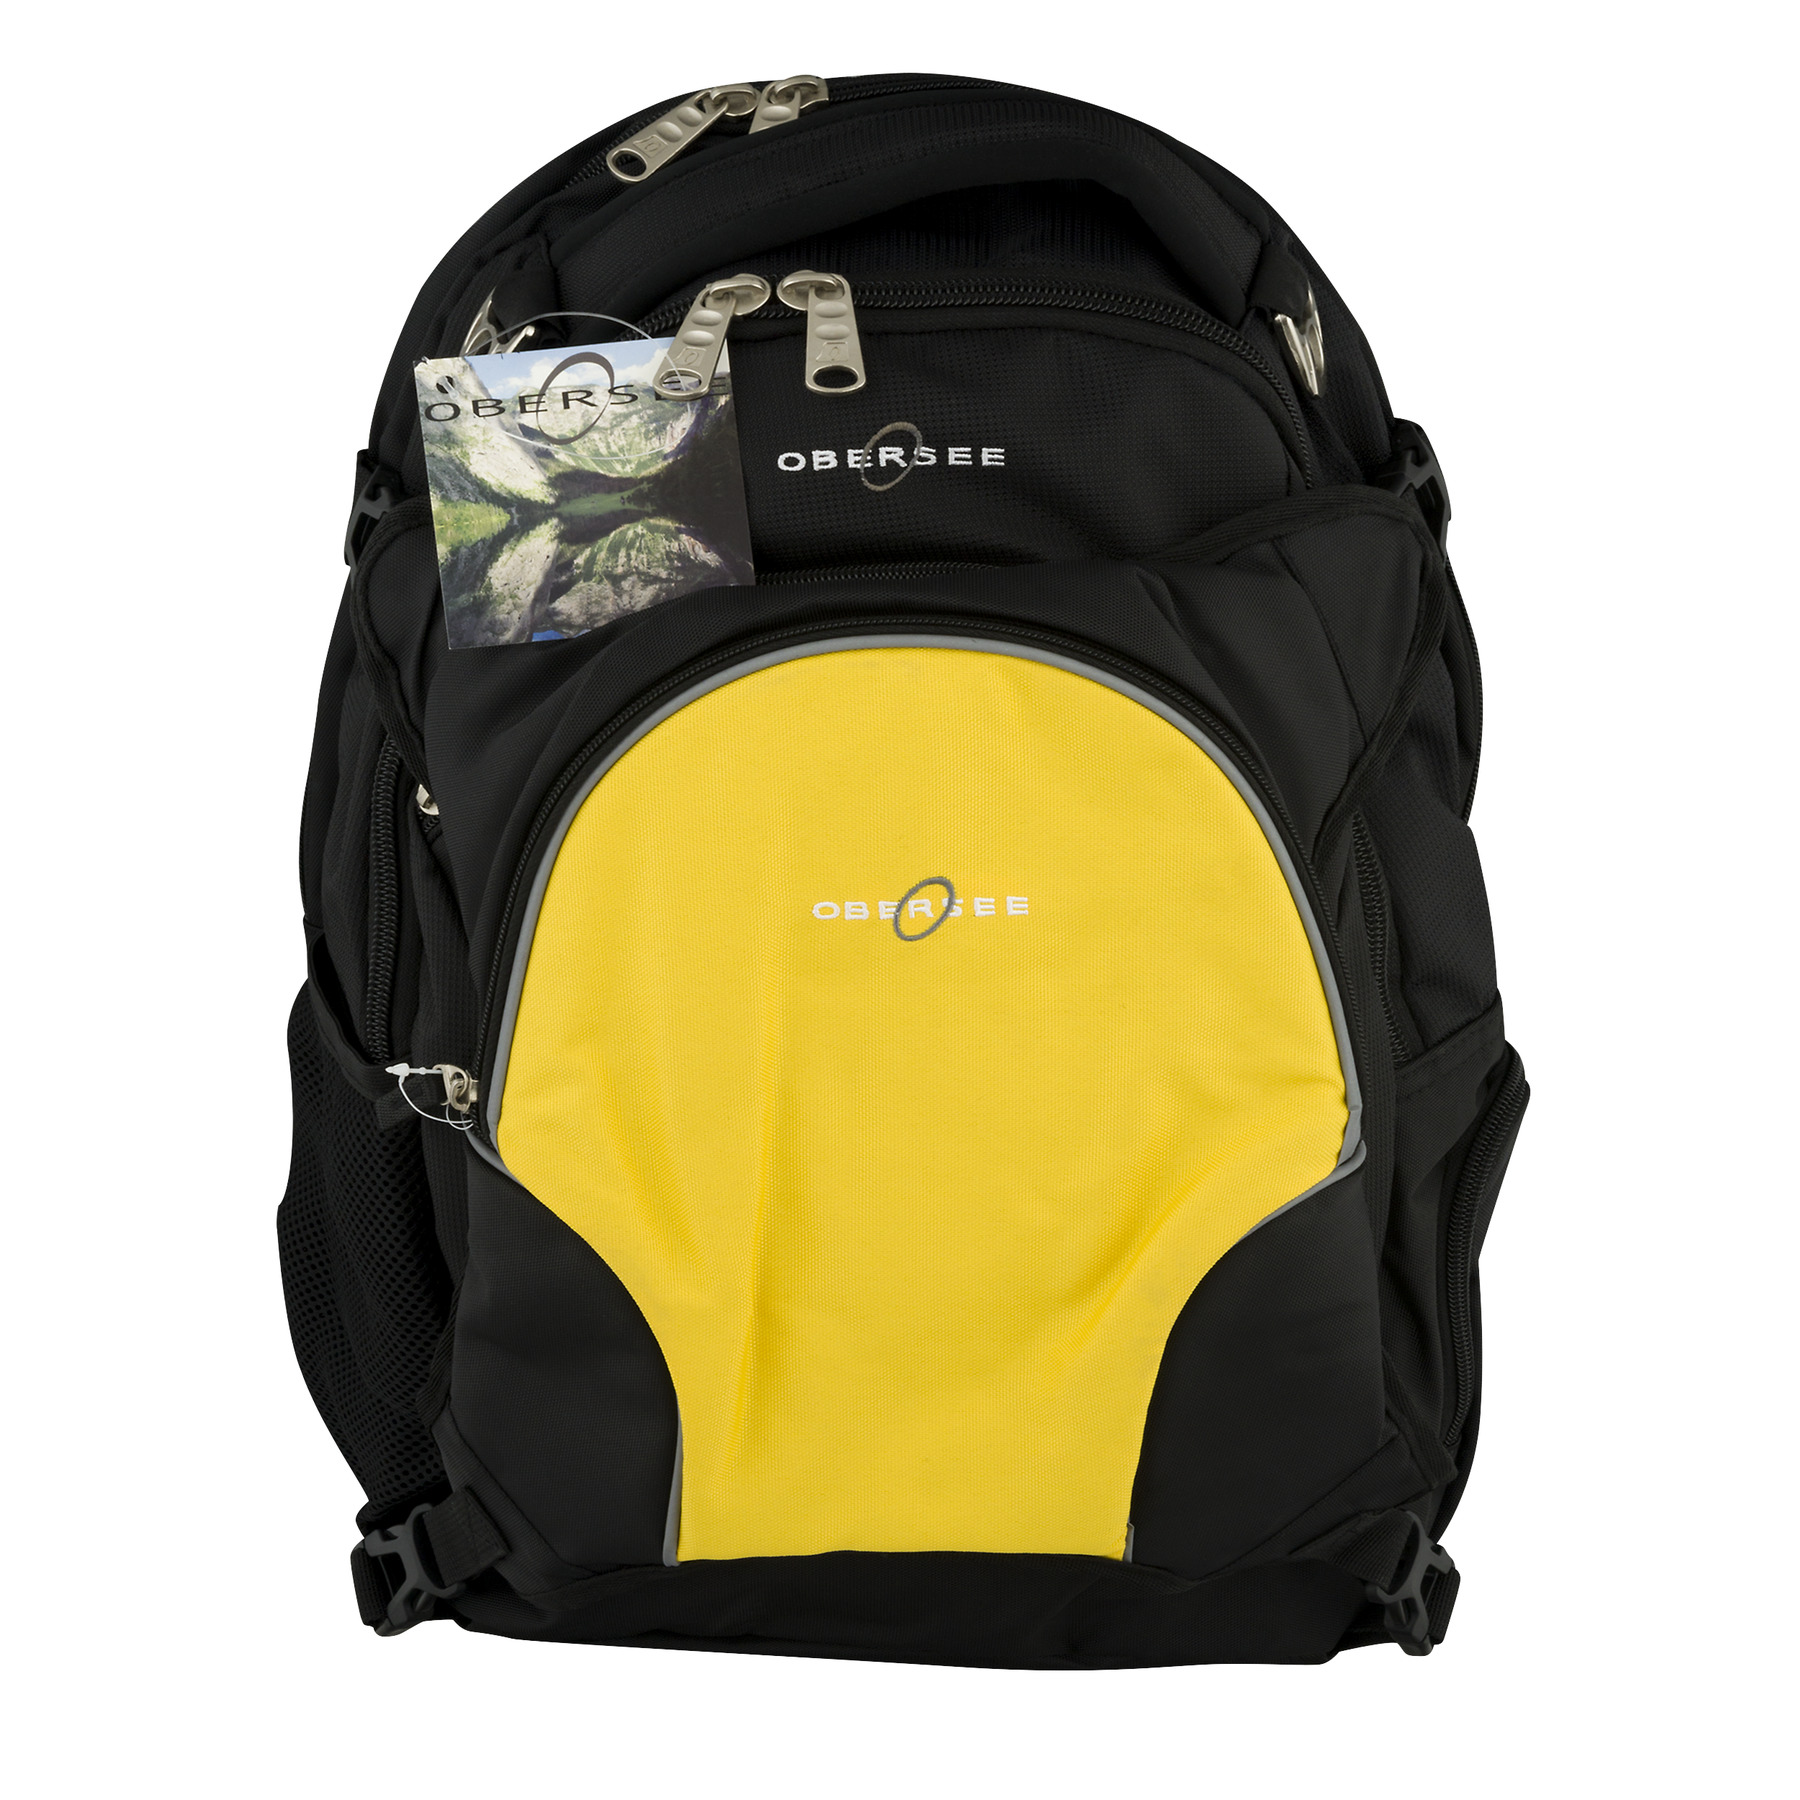 Obersee Oslo Diaper Bag Backpack and Cooler, Black Yellow by Obersee